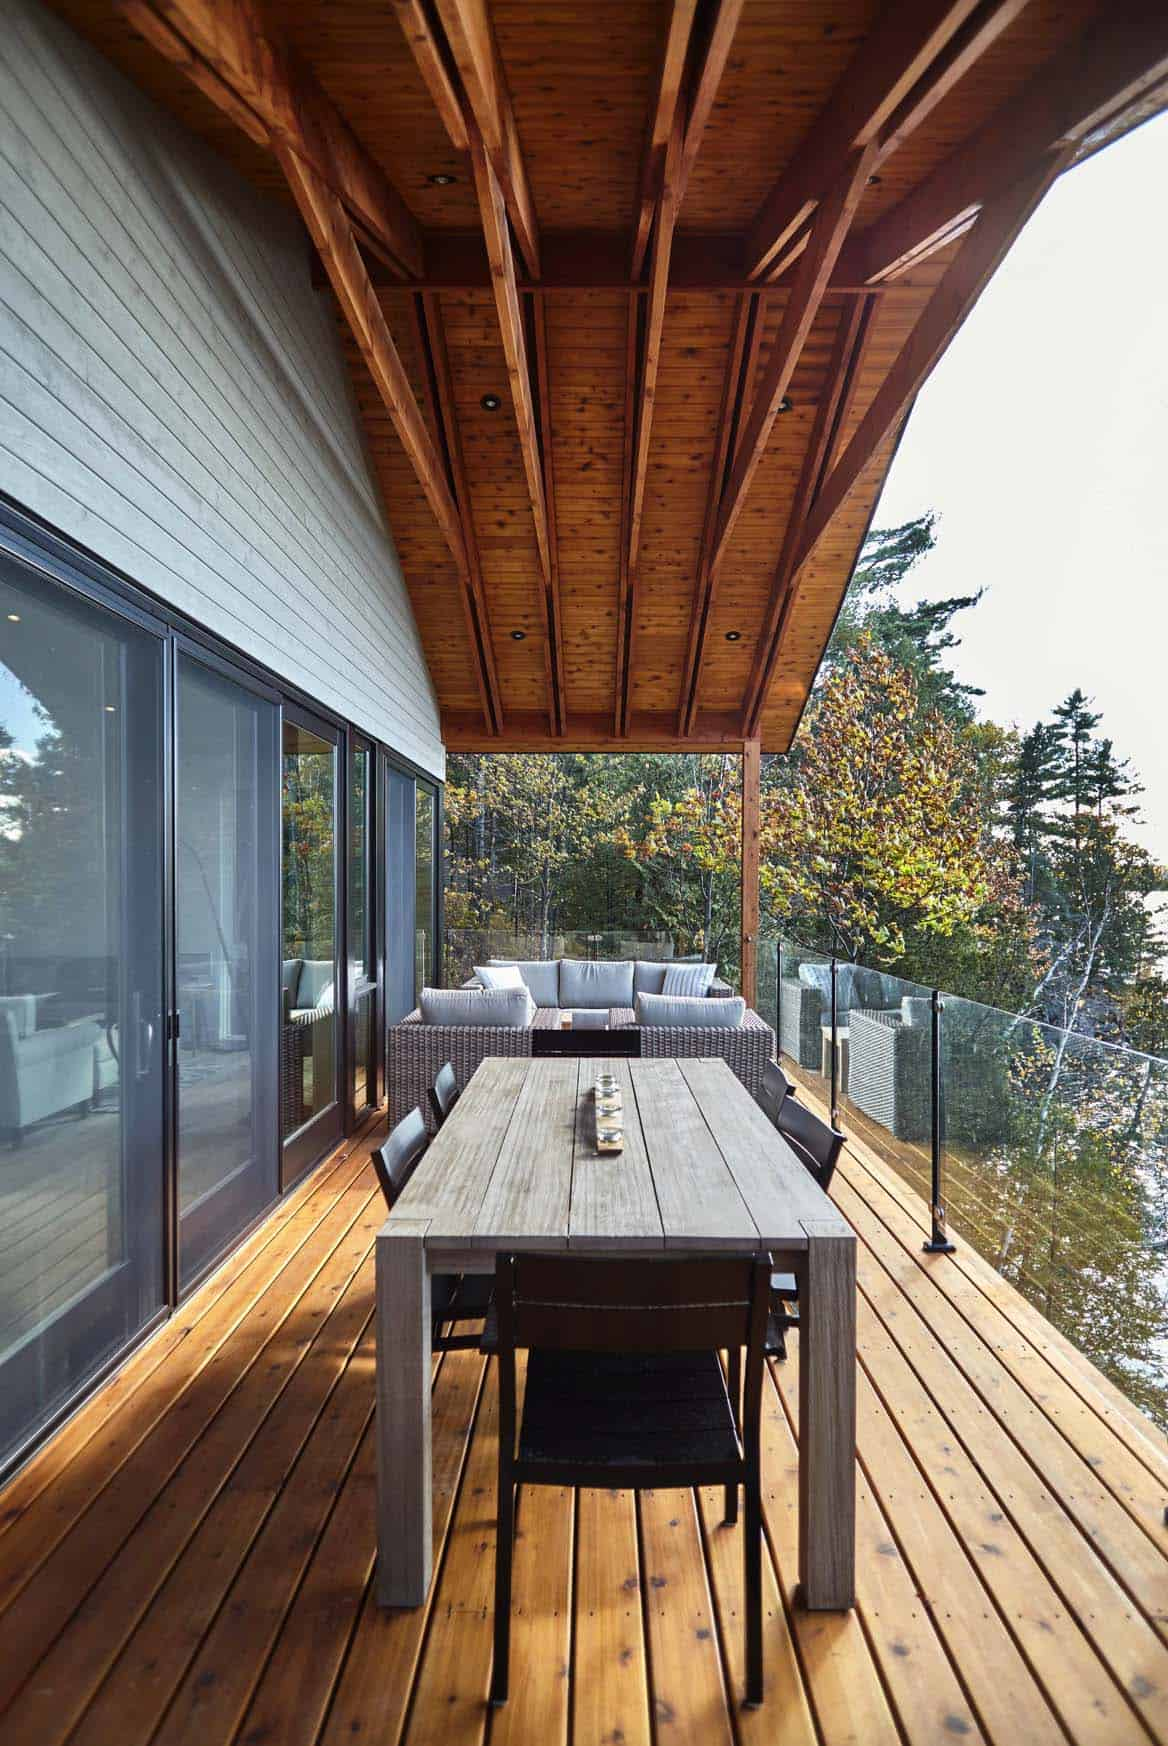 cottage-rustic-exterior-deck